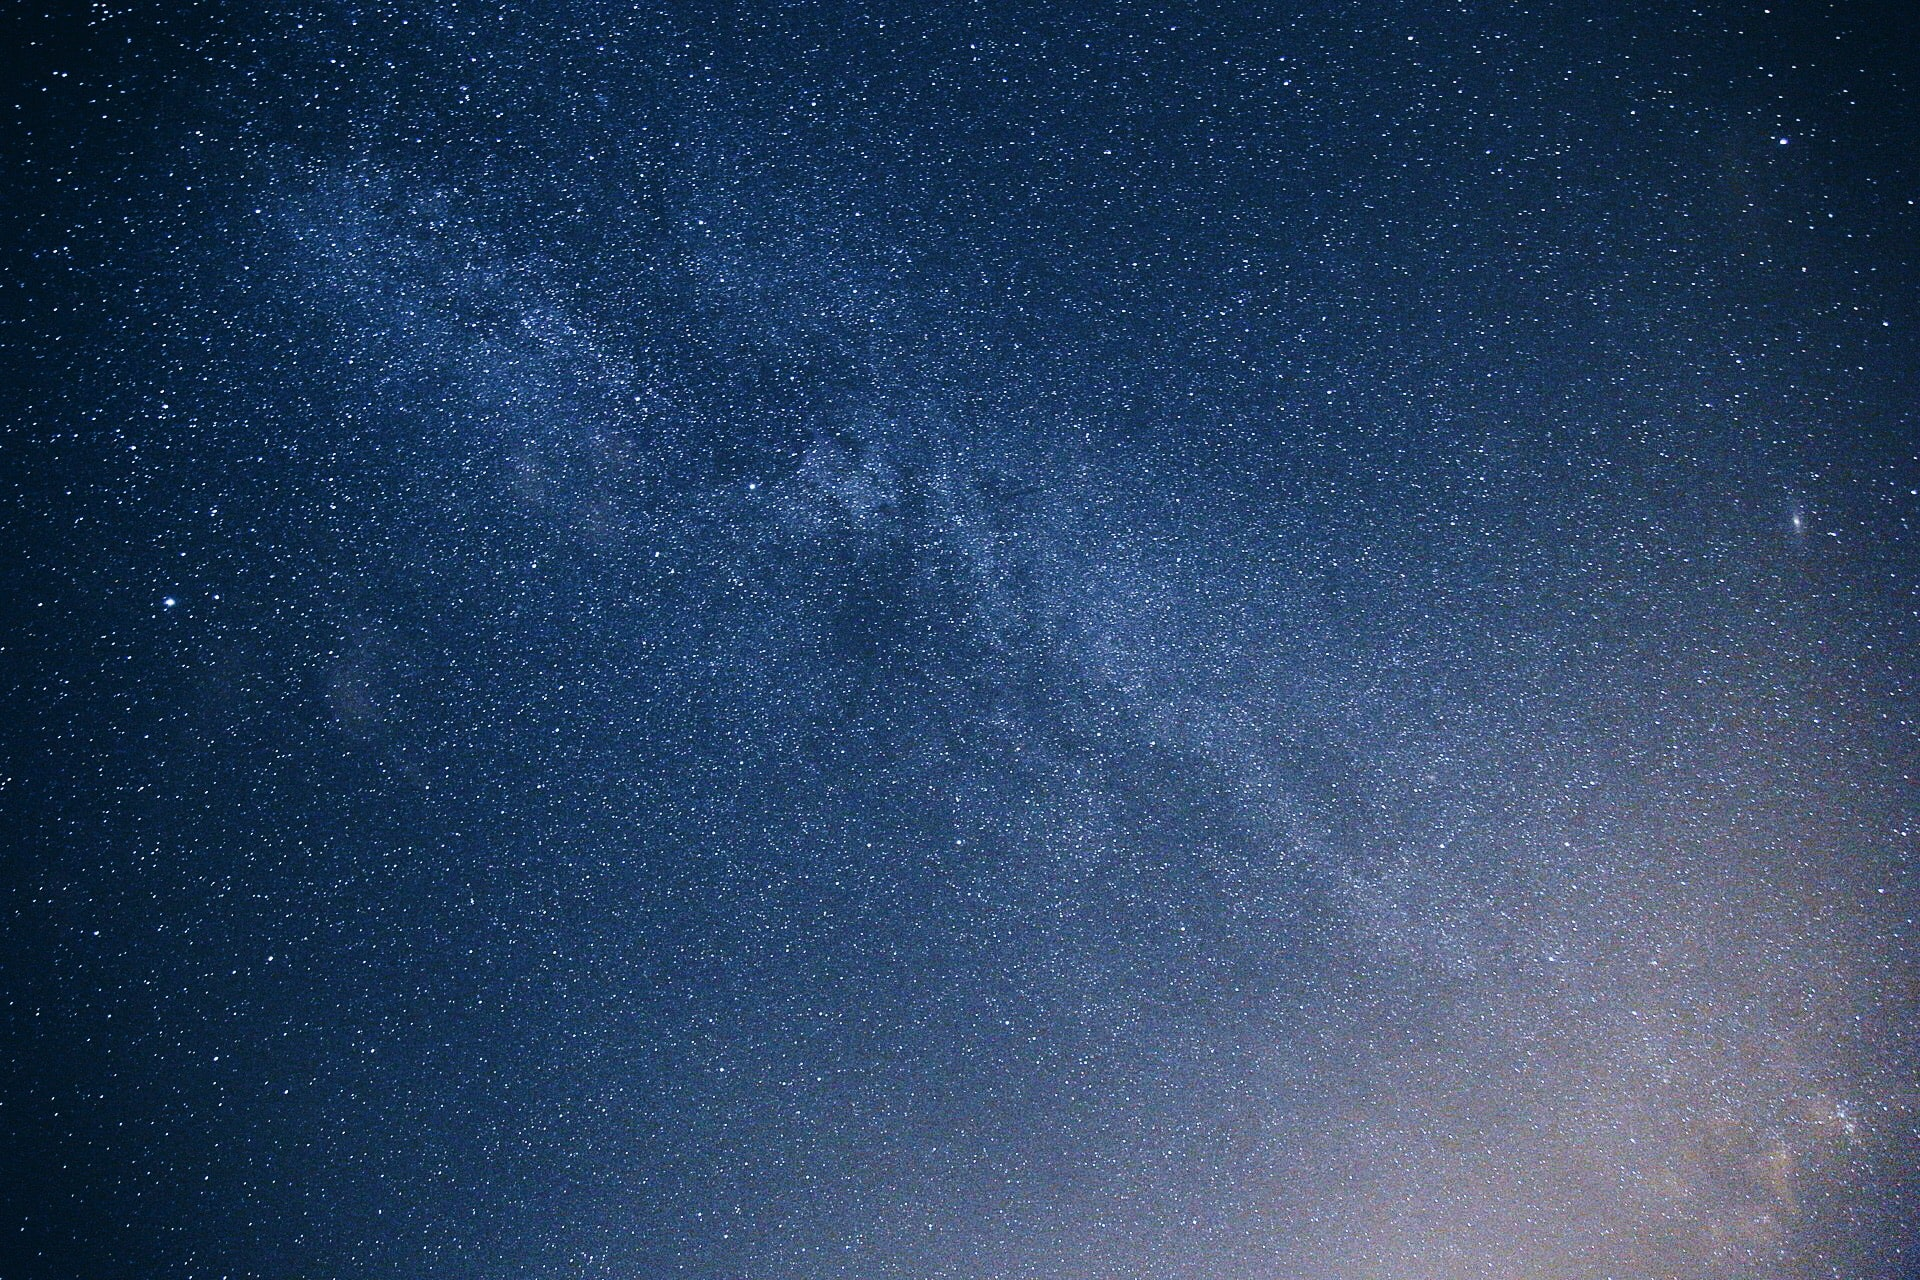 A closeup view of the Milky Way in the dark blue night sky.